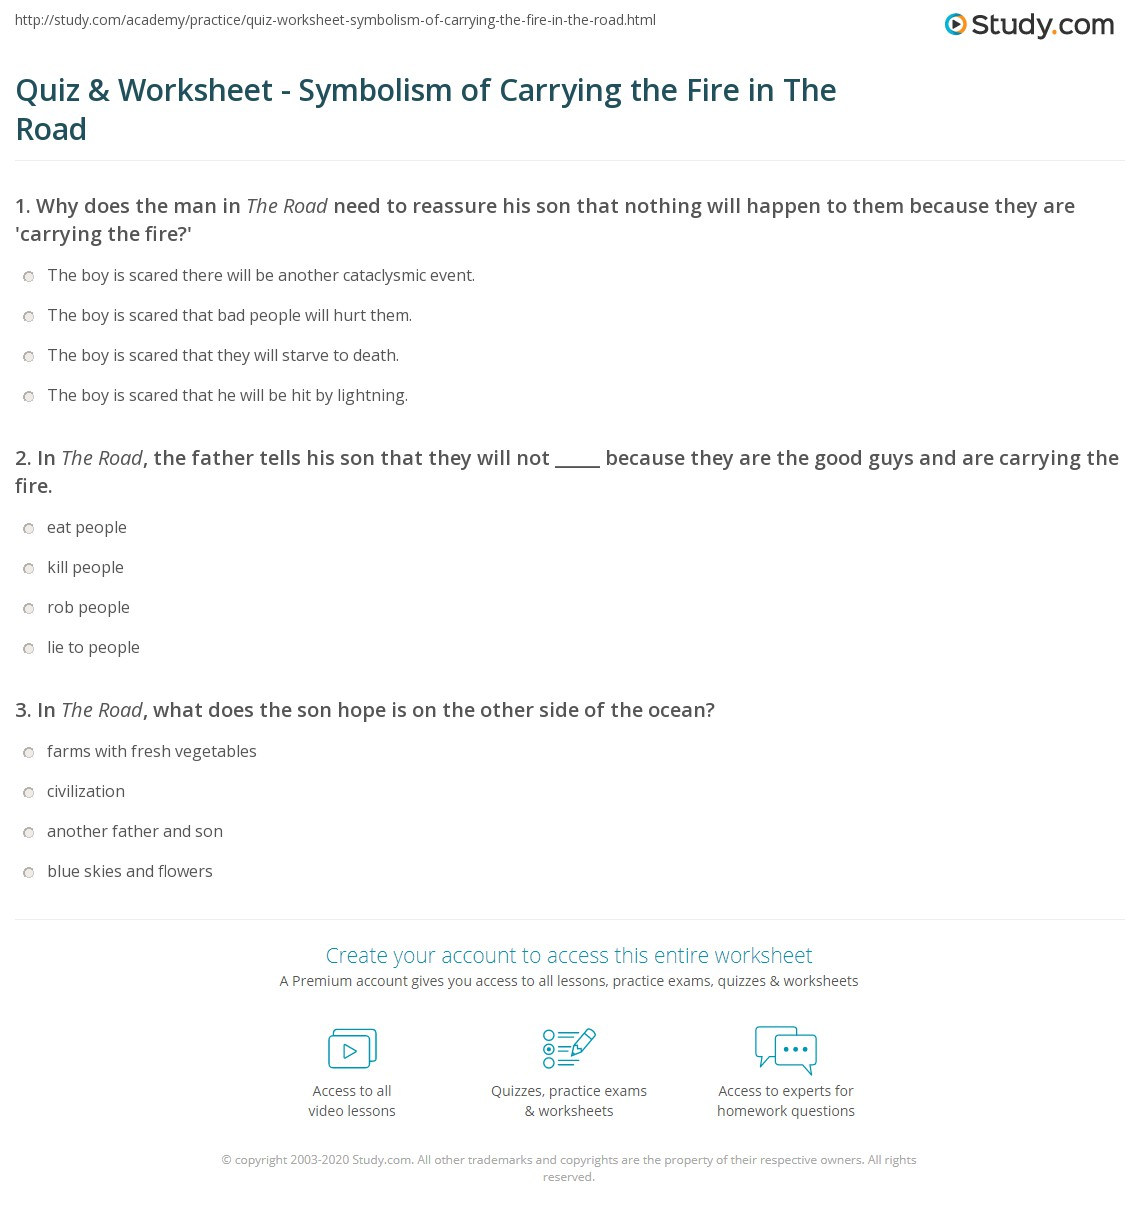 Quiz Worksheet Symbolism Of Carrying The Fire In The Road